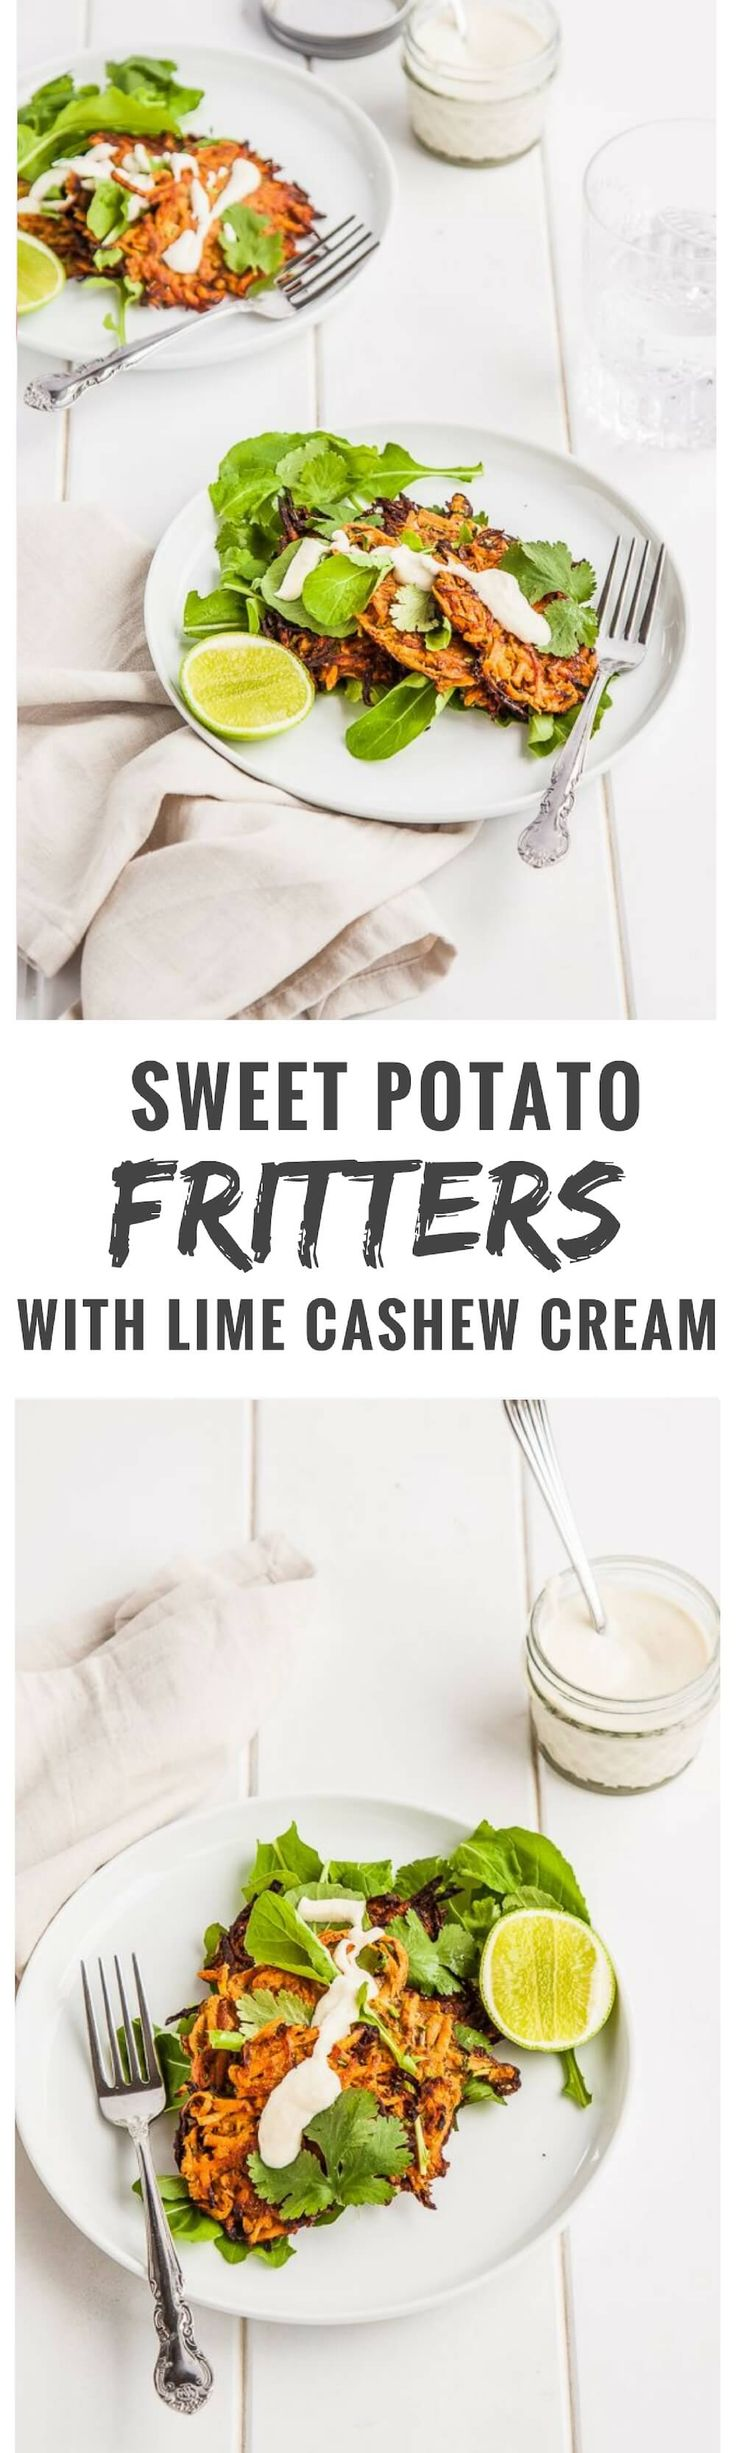 These fragrant gluten free sweet potato fritters are perfect for breakfast, lunch or dinner. Top with a generous dollop of dairy free lime cashew cream and a side salad and dinner is sorted!